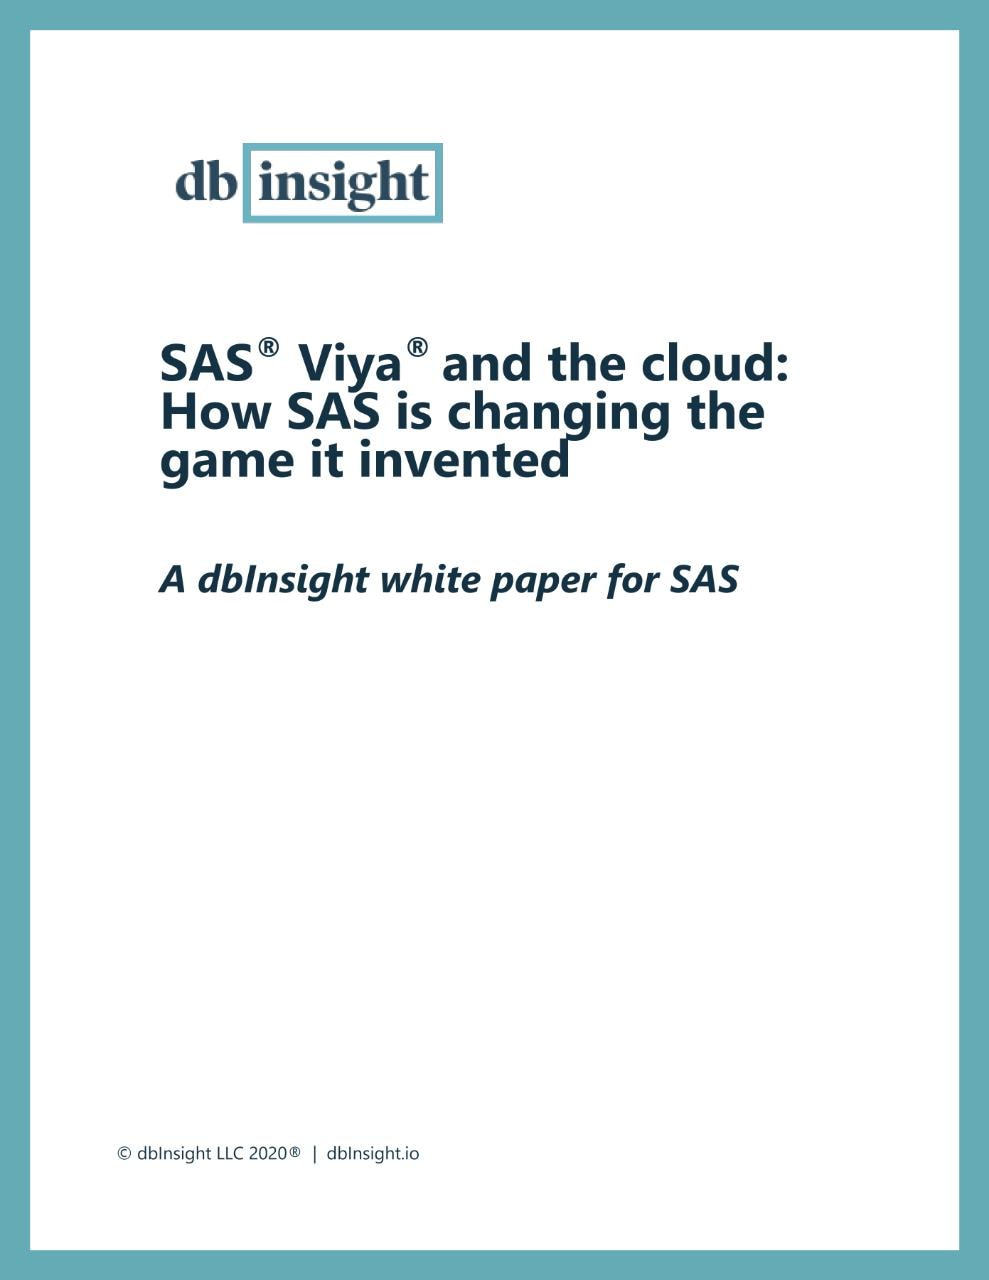 SAS® Viya® and the cloud: How SAS is changing the game it invented